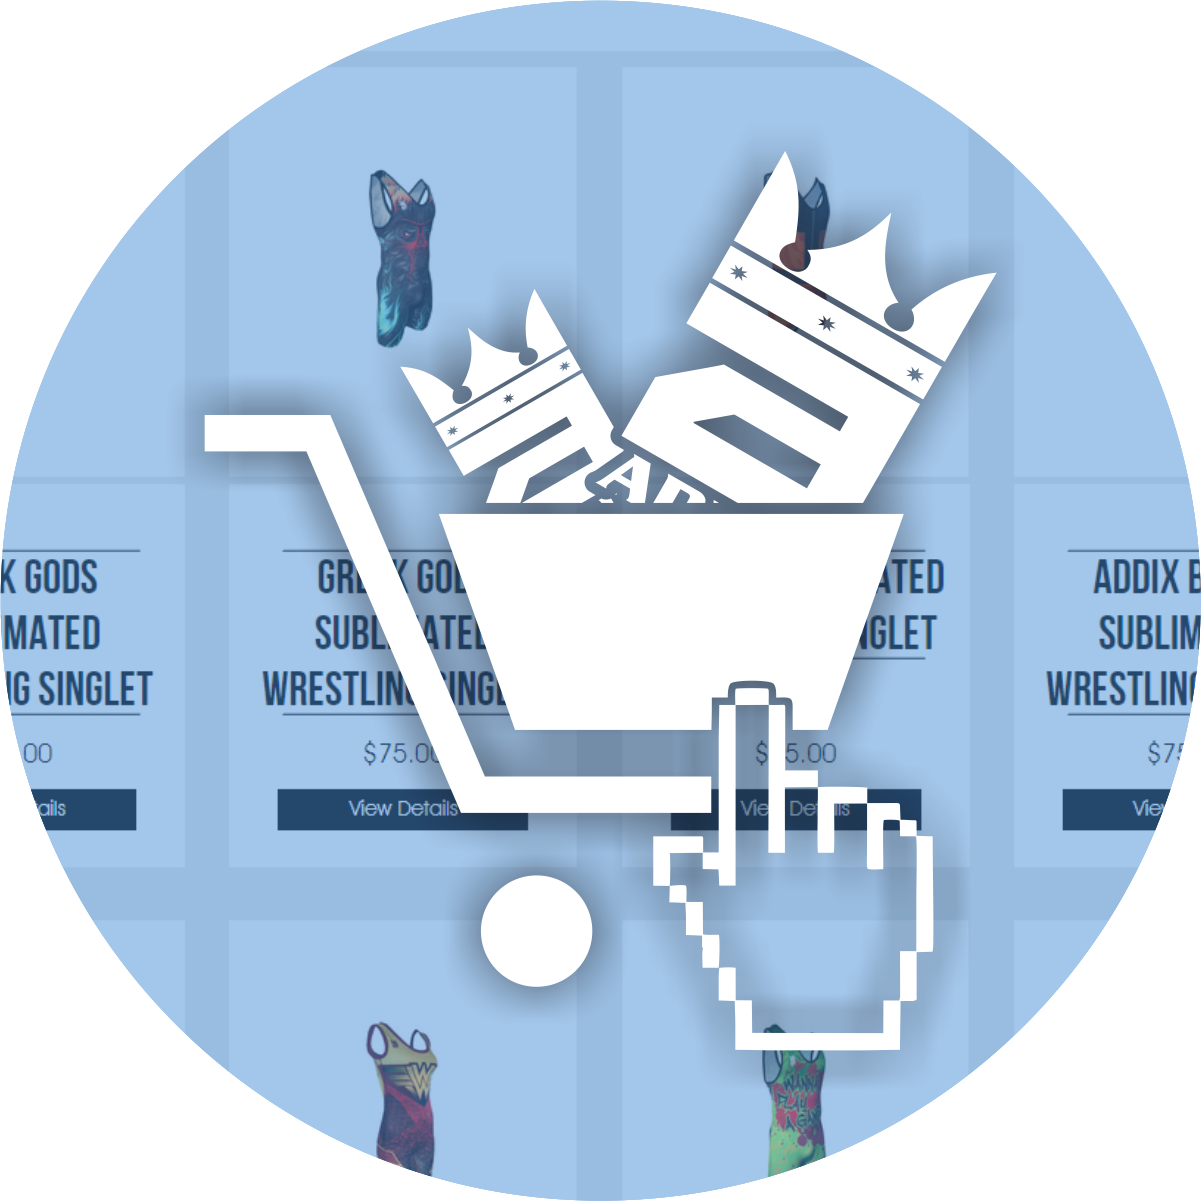 Copy of ADDIX Online Stores